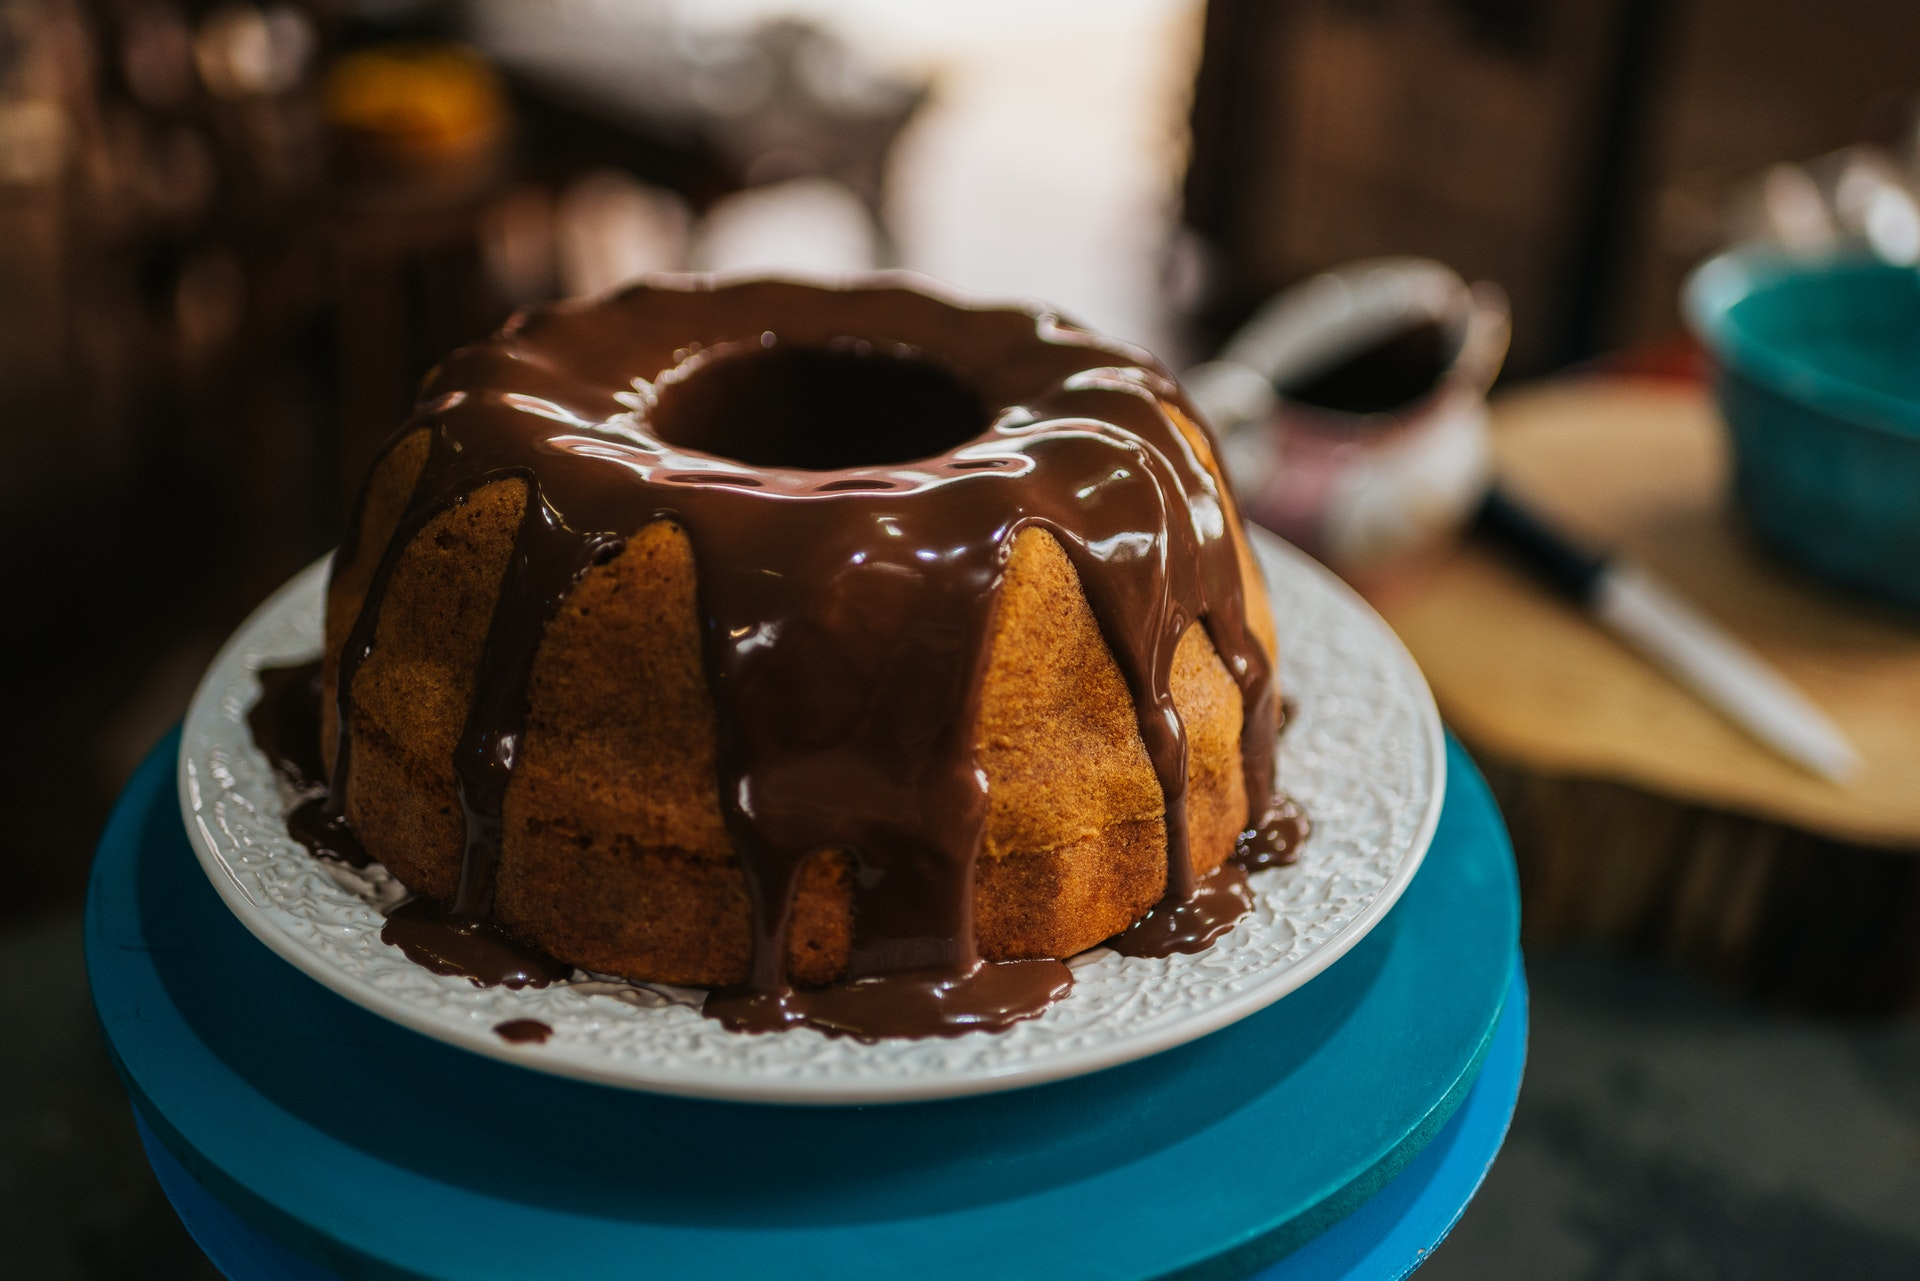 Chocolate drizzled over an appetizing bundt cake